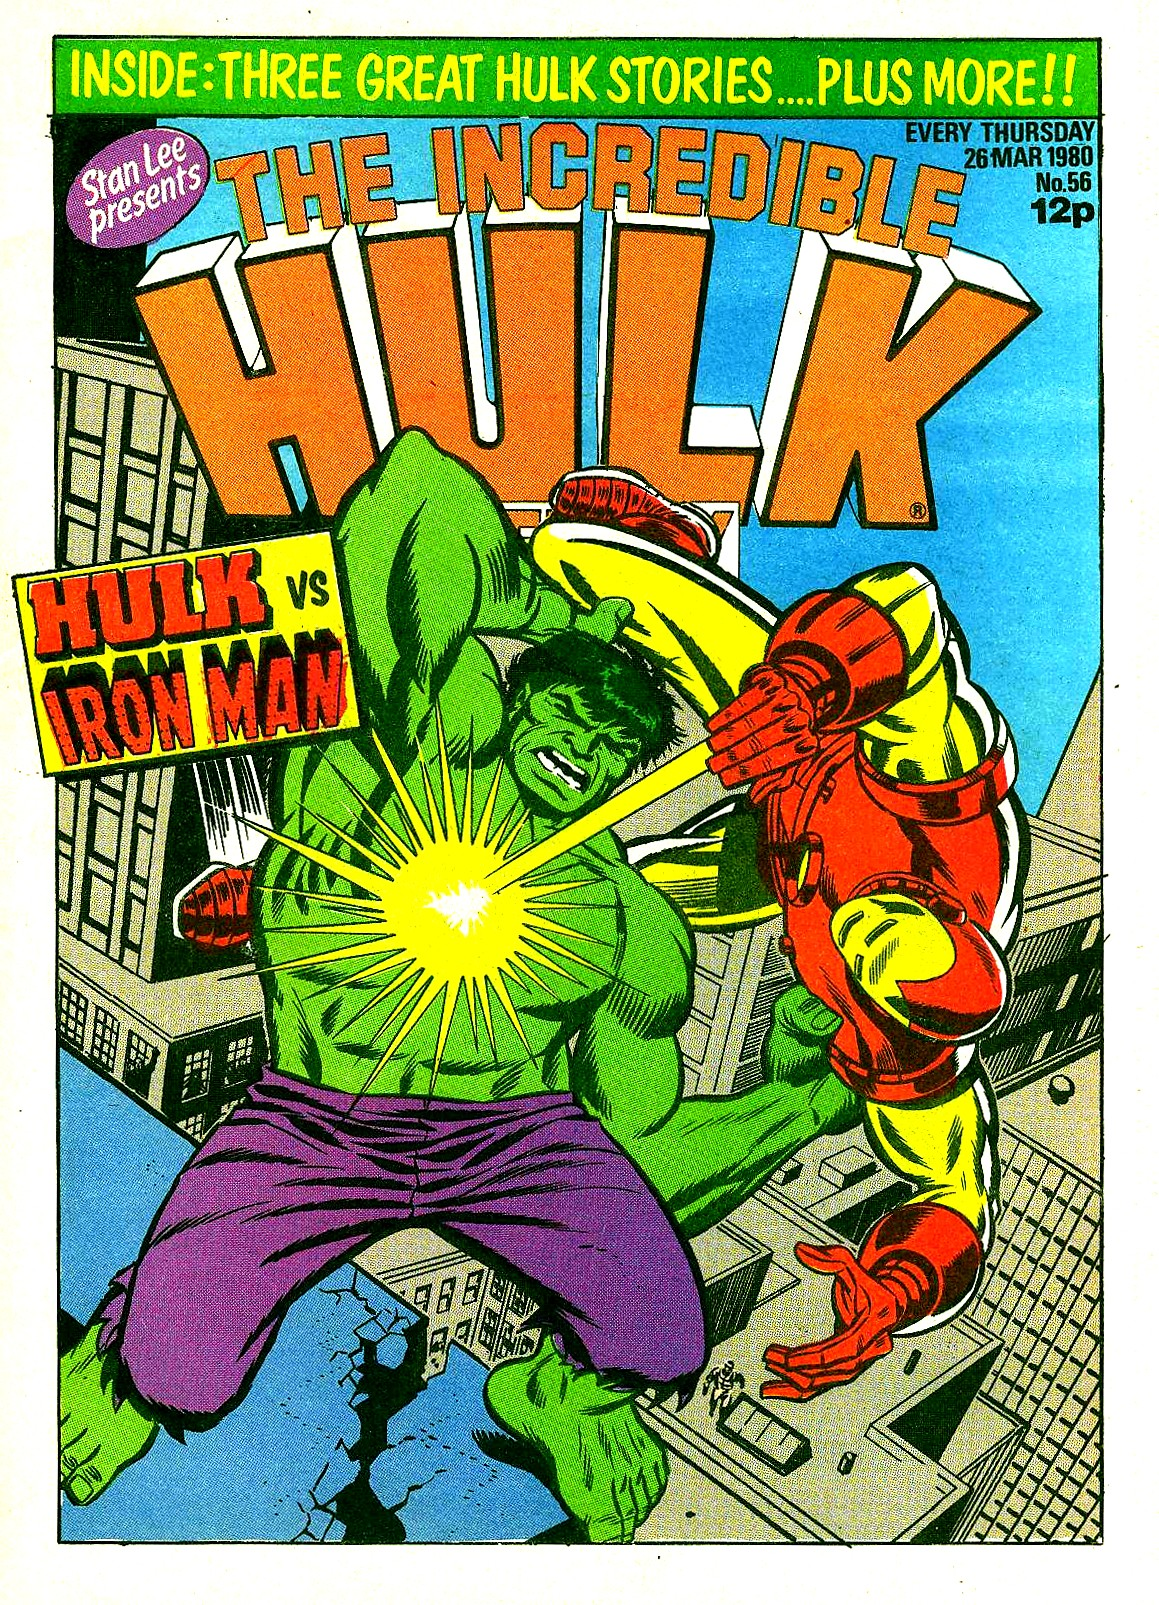 The Incredible Hulk Weekly 56 Page 1